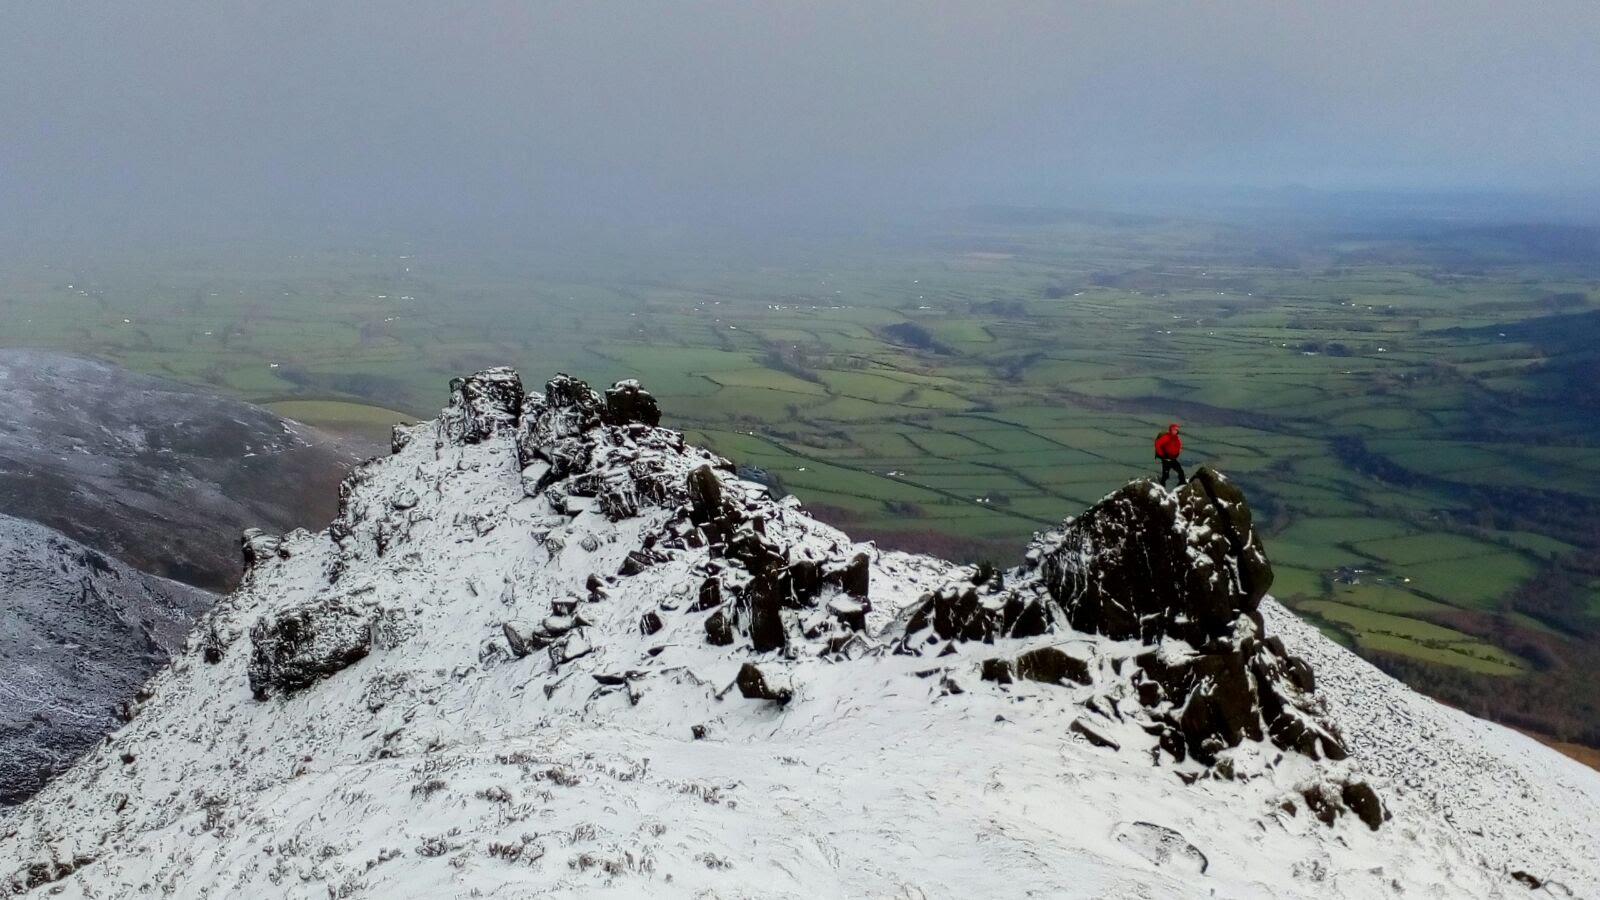 The Comeragh Mountains, Co. Waterford